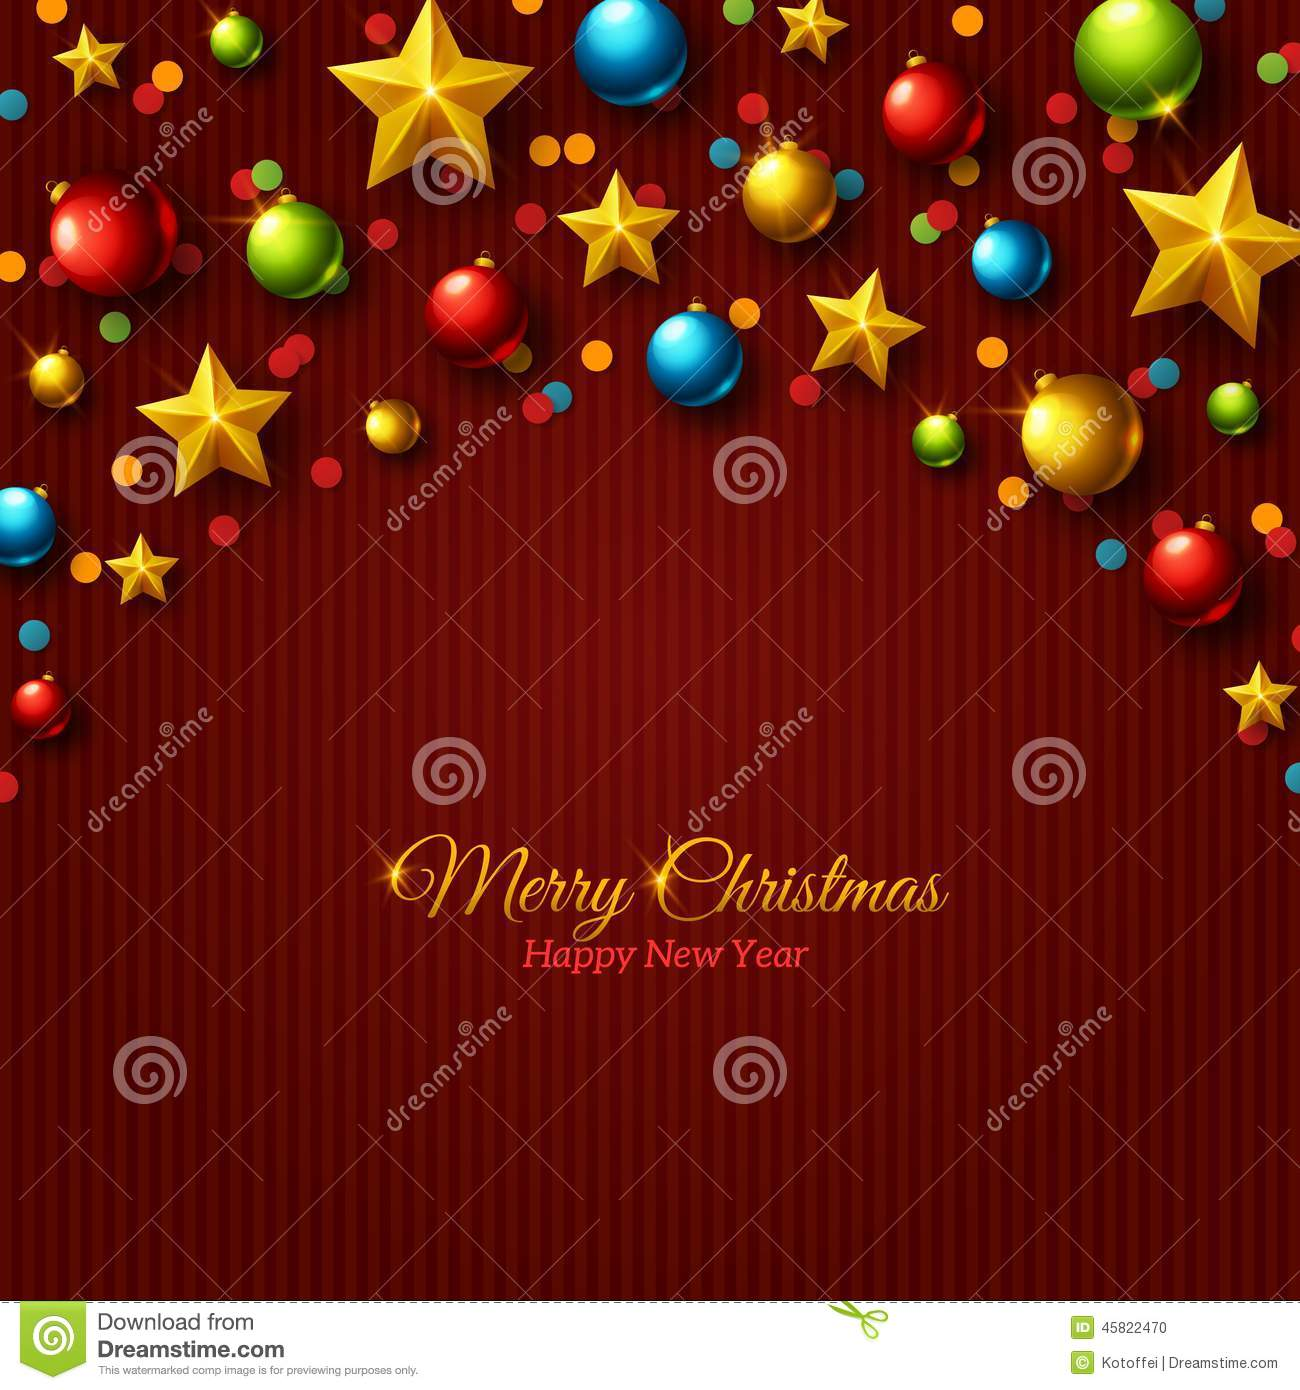 merry christmas and happy new year text holiday border great for greeting cards and invitations